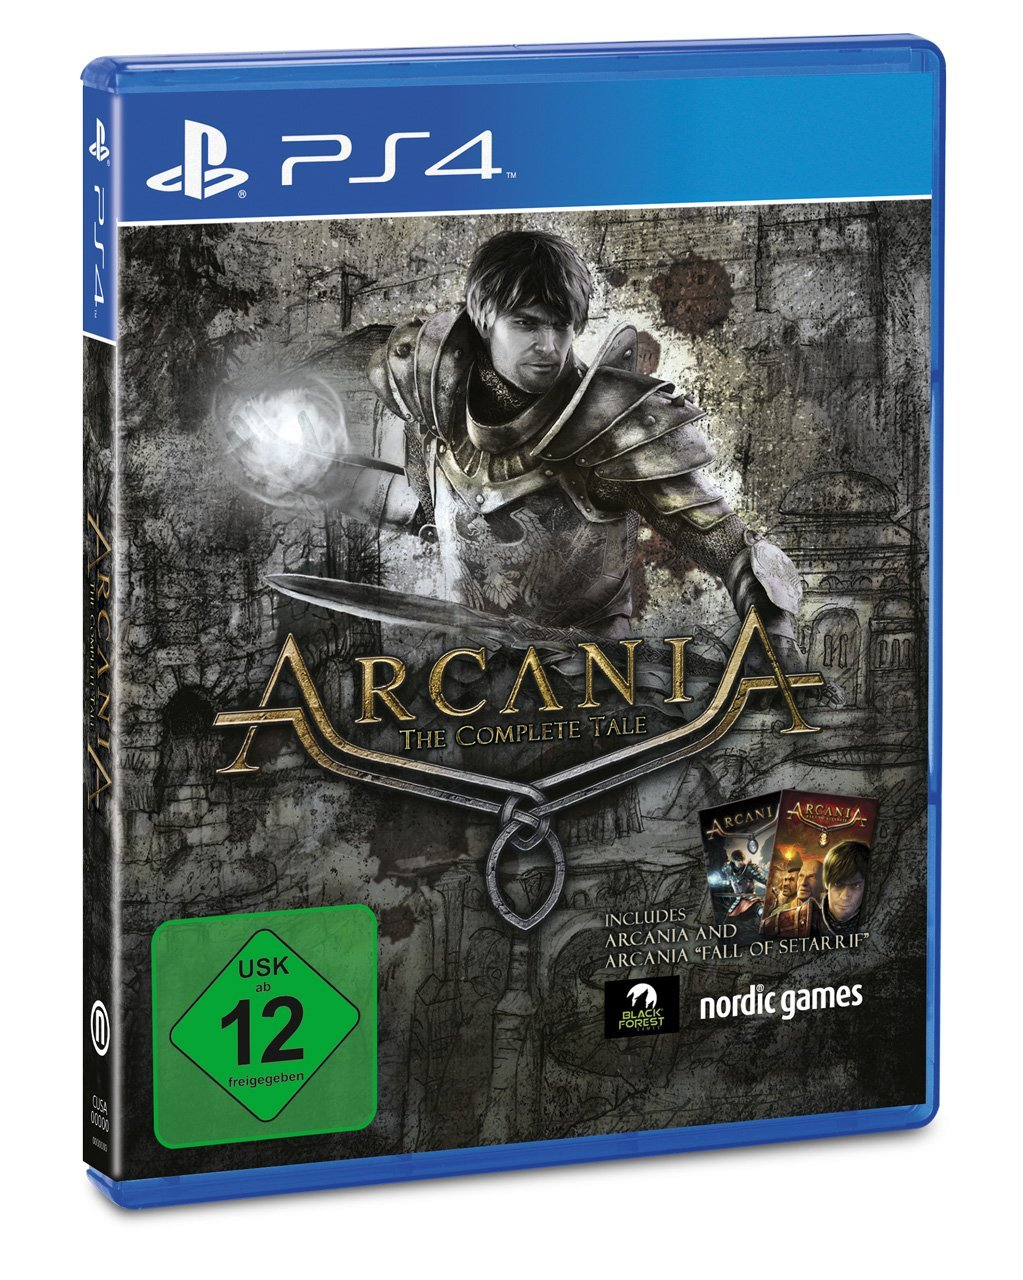 arcania-the-complete-tale_pk